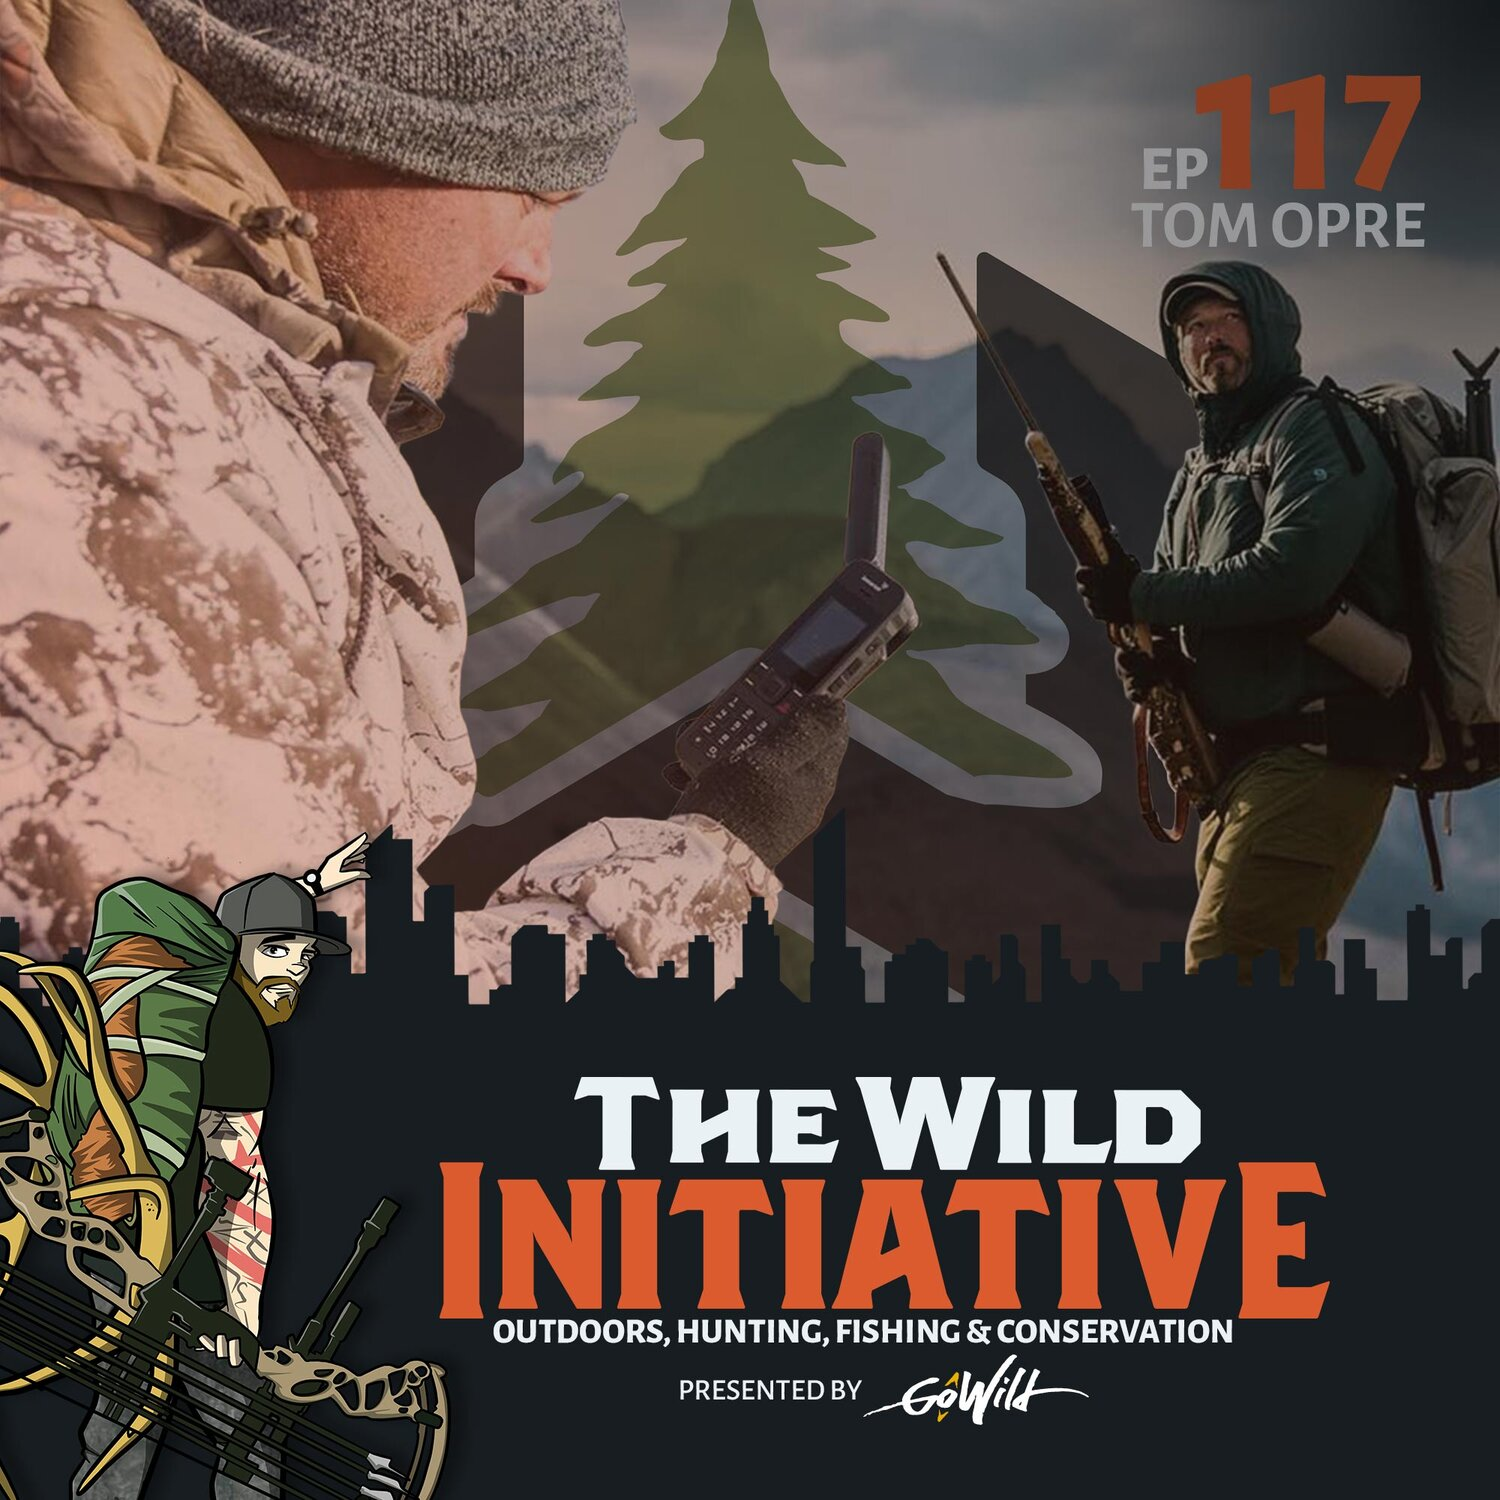 Ep 117 Tom Opre - The Wild Initiative - Outdoors, Hunting, Fishing & Conservation - Presented by GoWild